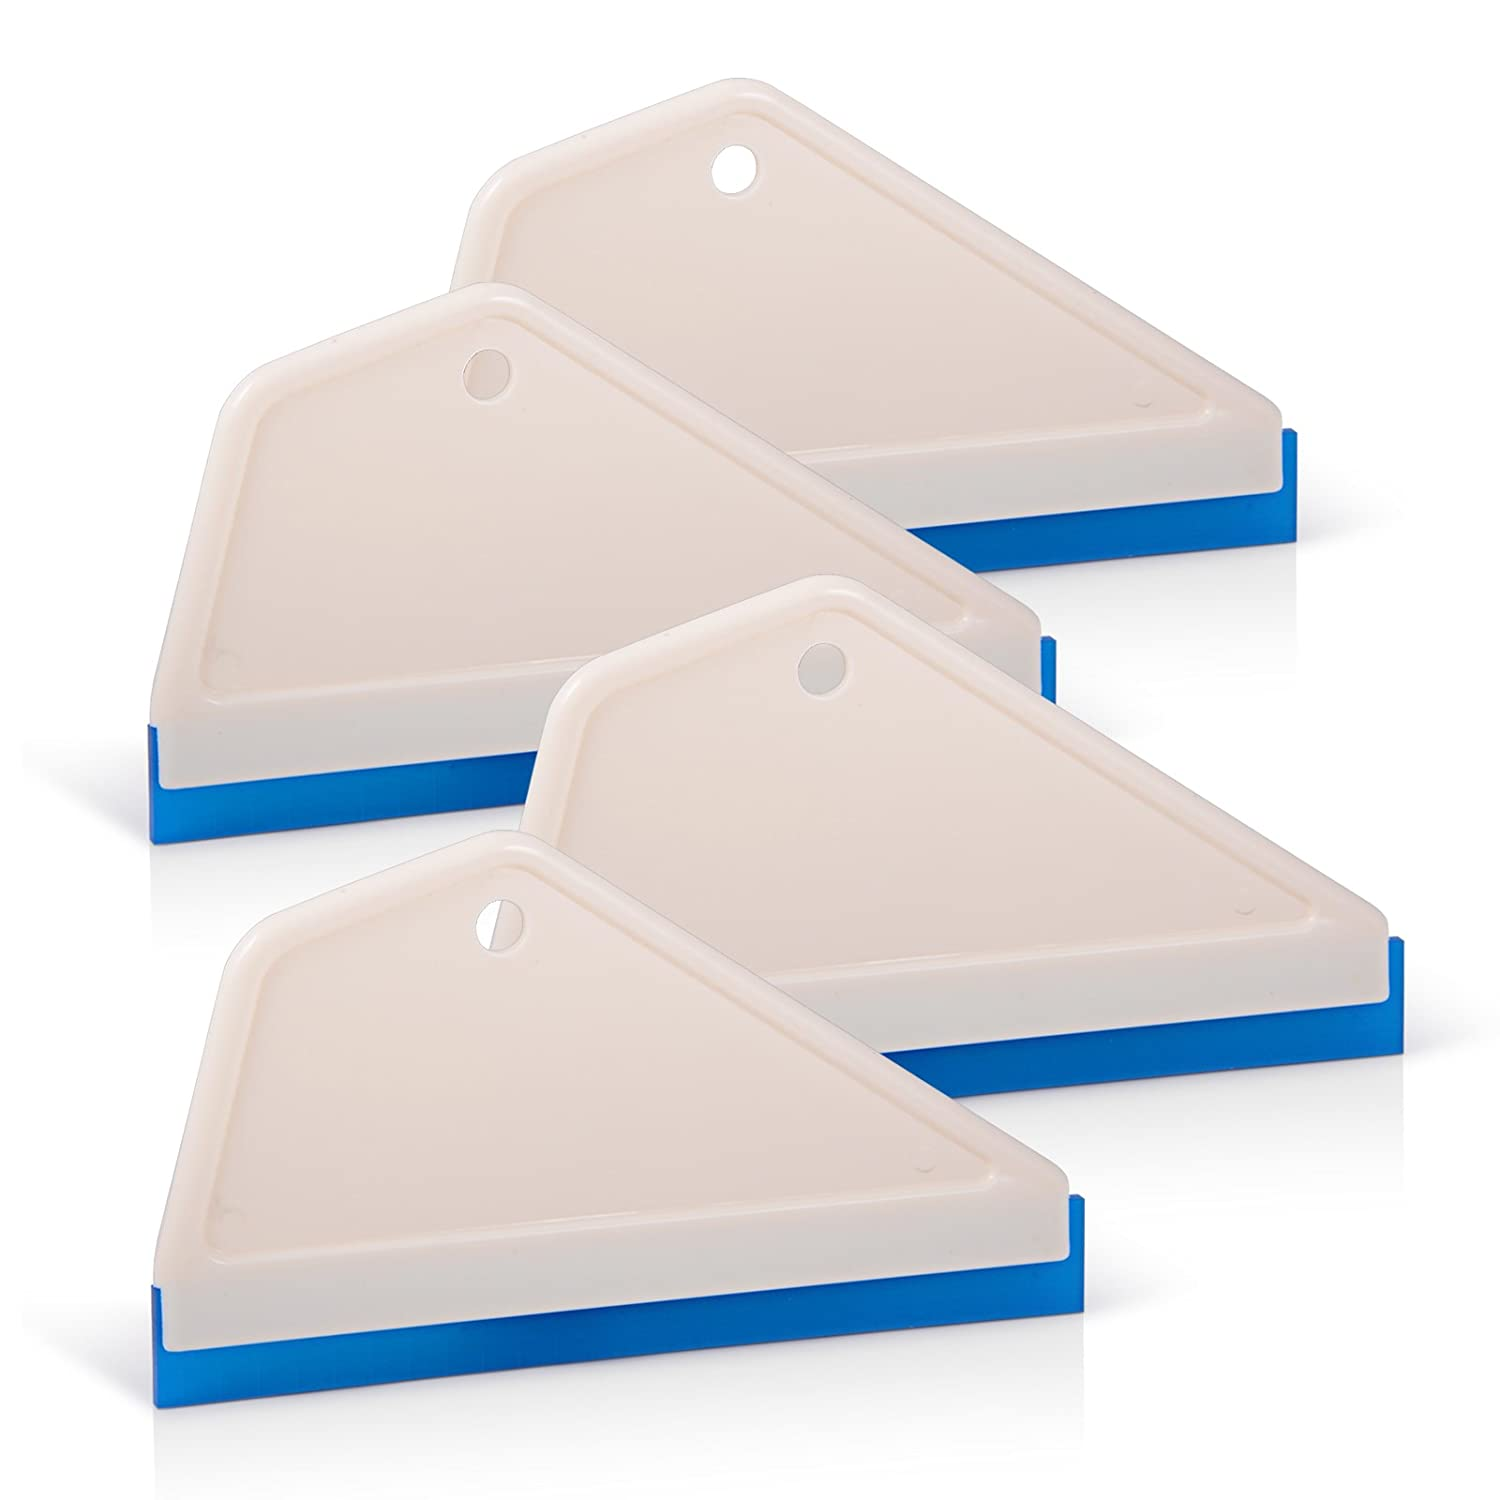 FOSHIO Professional 6 Inch Mini Rubber Squeegee for Kitchens, Glass, Shower and Car Windows, Pack of 3